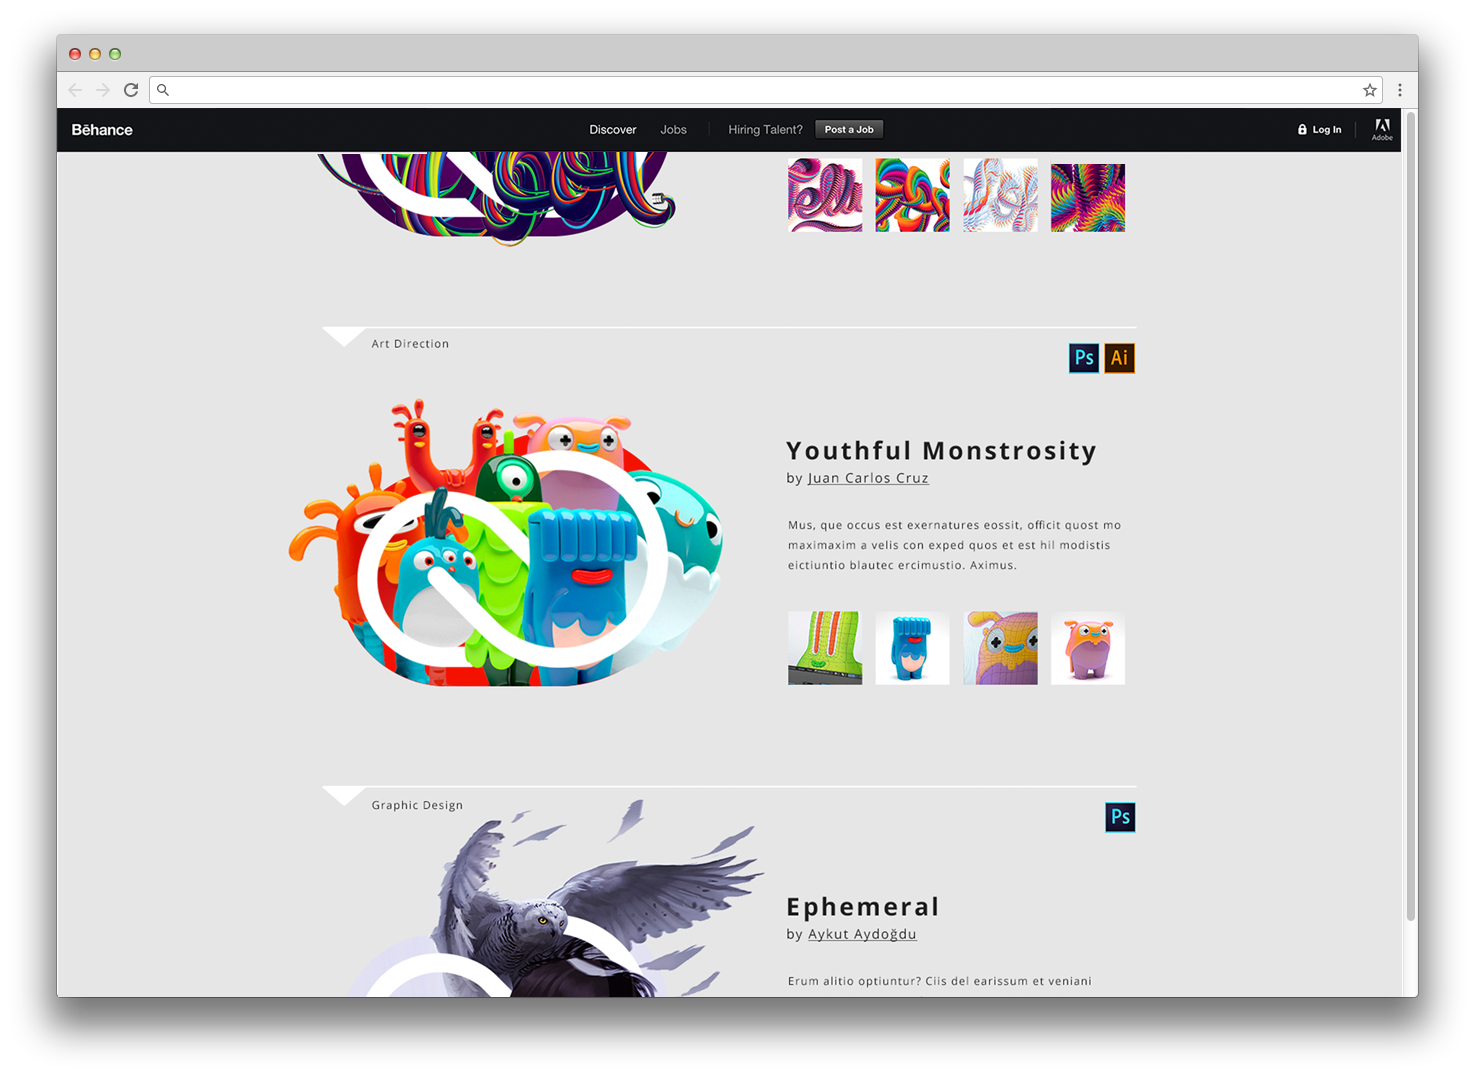 Behance Site: Every week, Adobe staff chooses a project from select creative fields and designs a TANGO logo with an article featuring the artist and their process